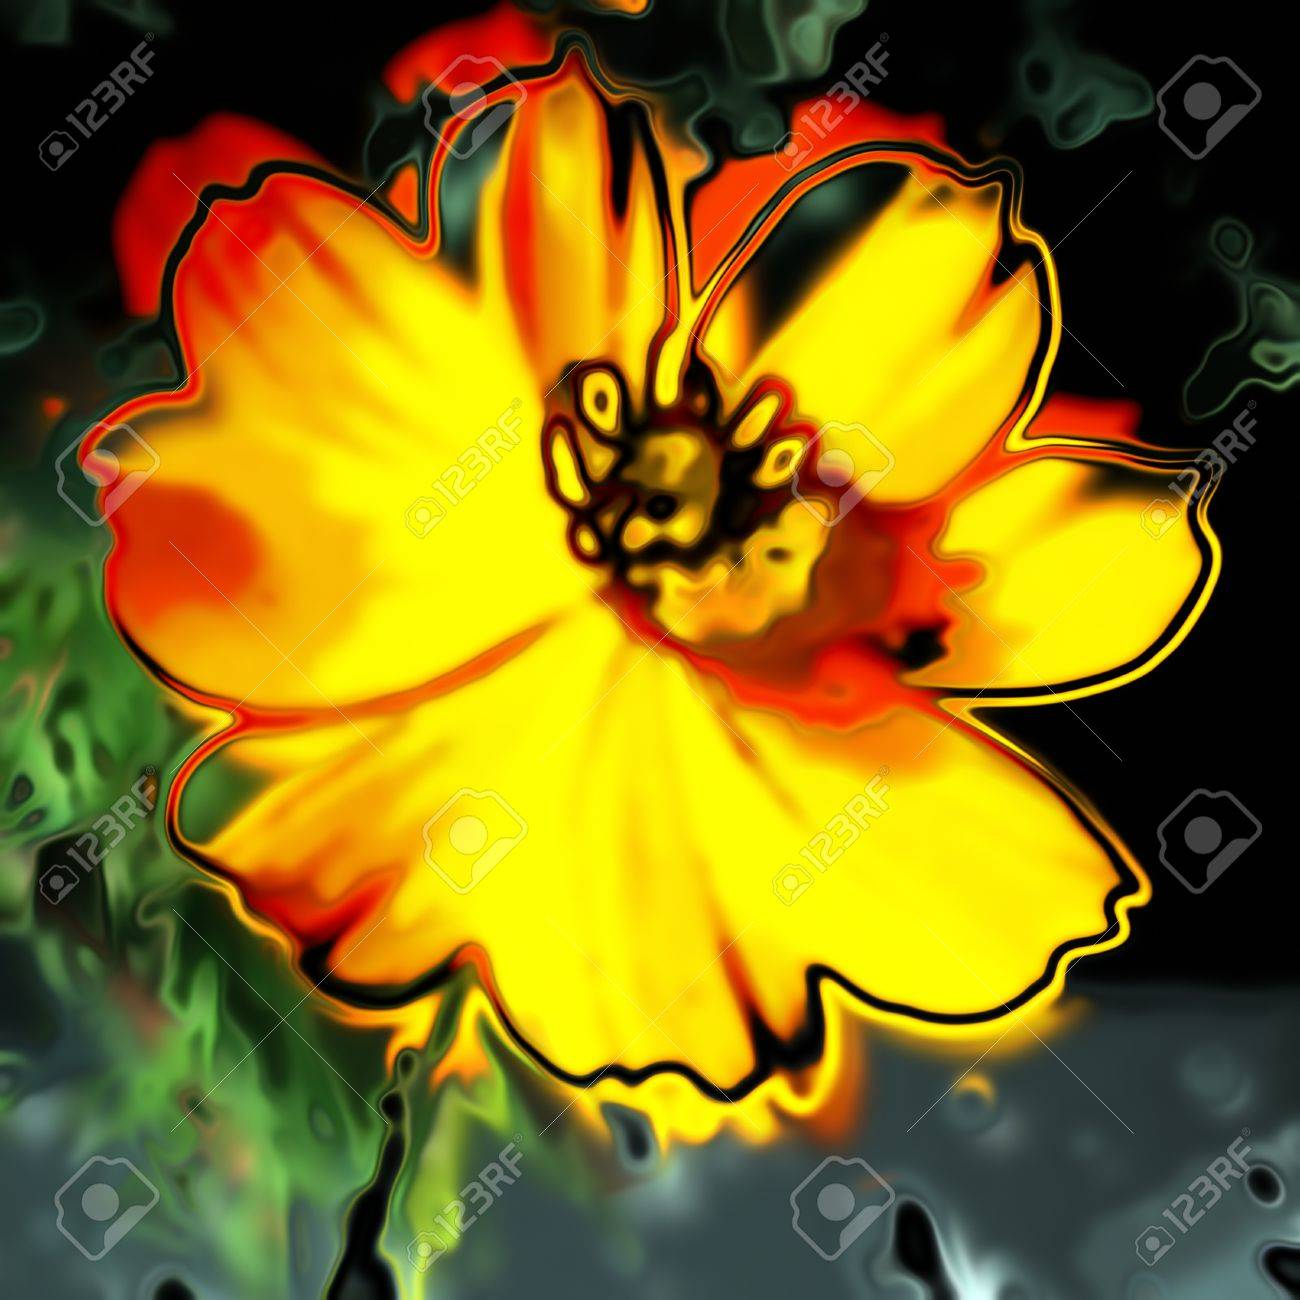 art glass floral colorful background Stock Photo - 15052945